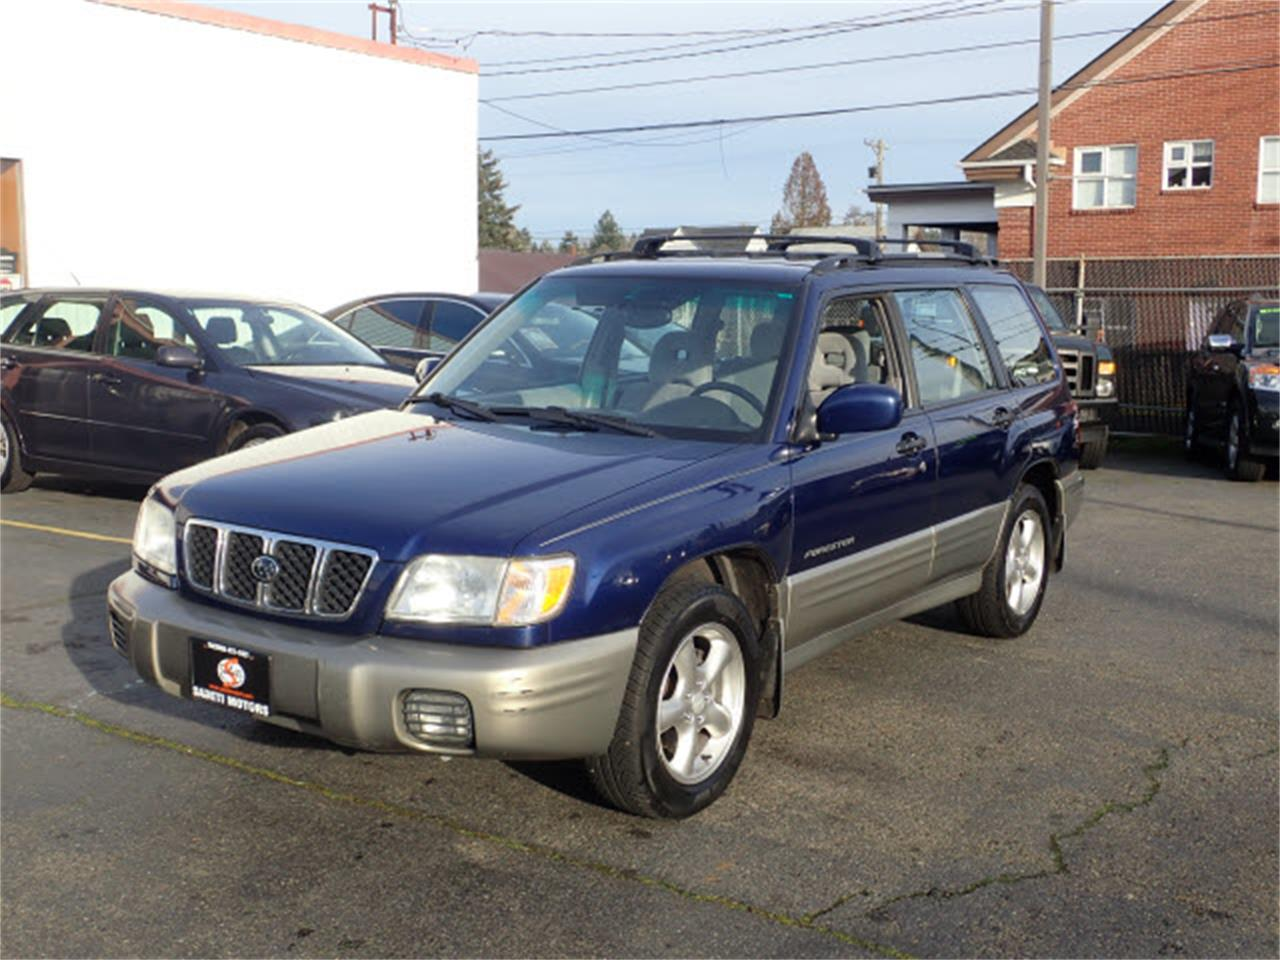 2001 subaru forester for sale classiccars com cc 1184628 2001 subaru forester for sale